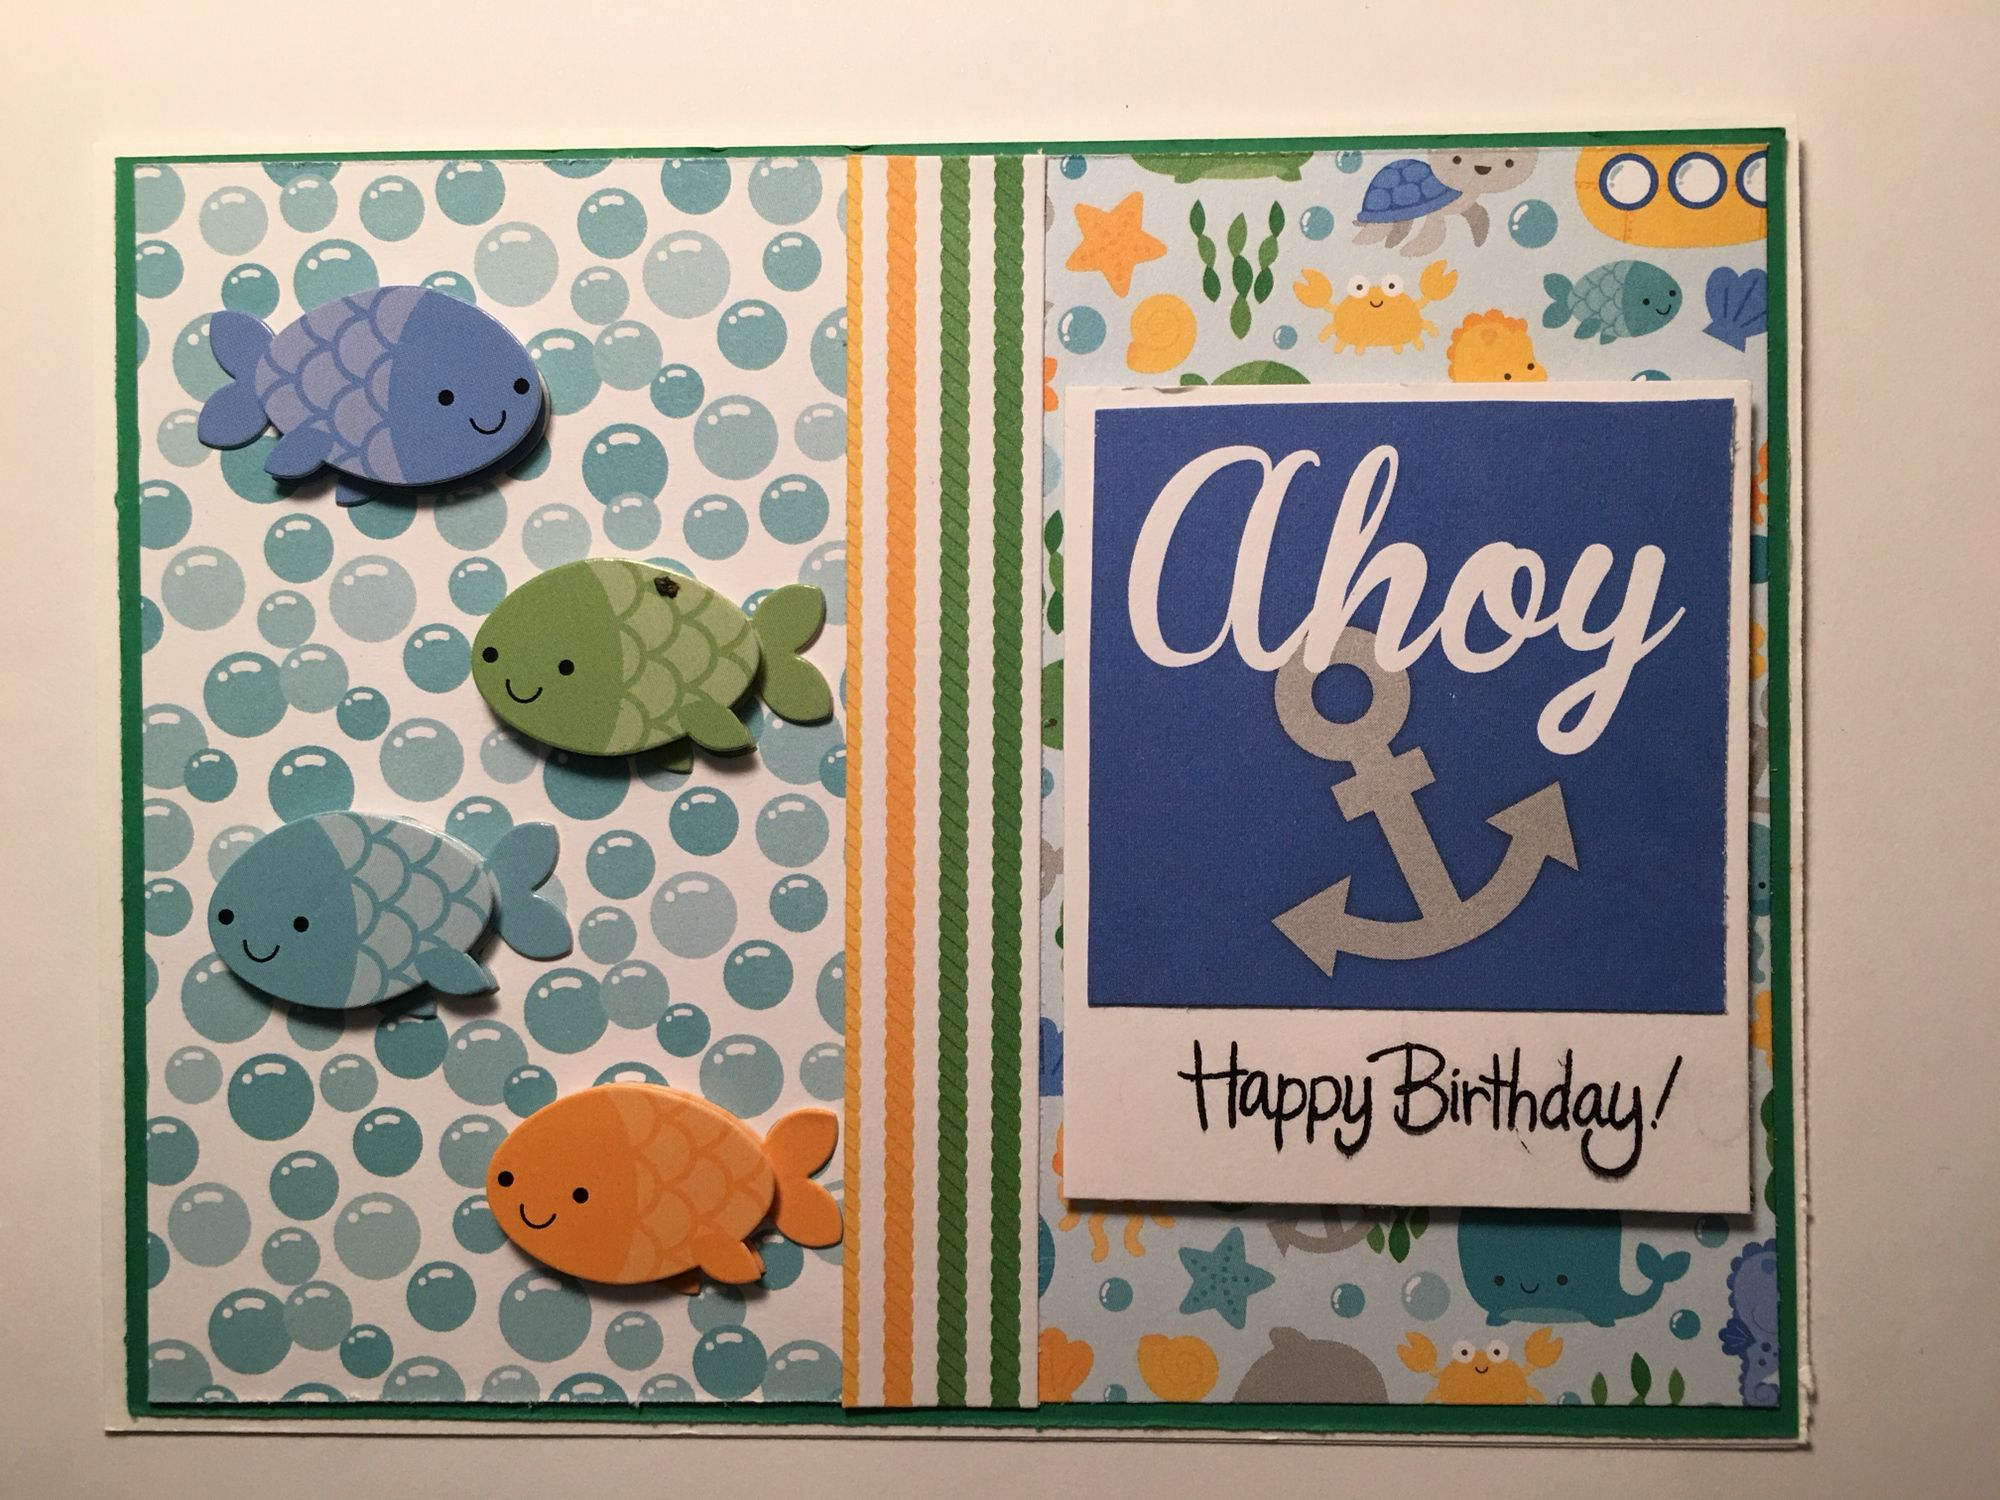 Cby happy birthday greeting card child made 13 cards from the cby happy birthday greeting card child made 13 cards from the doodlebug design bookmarktalkfo Image collections